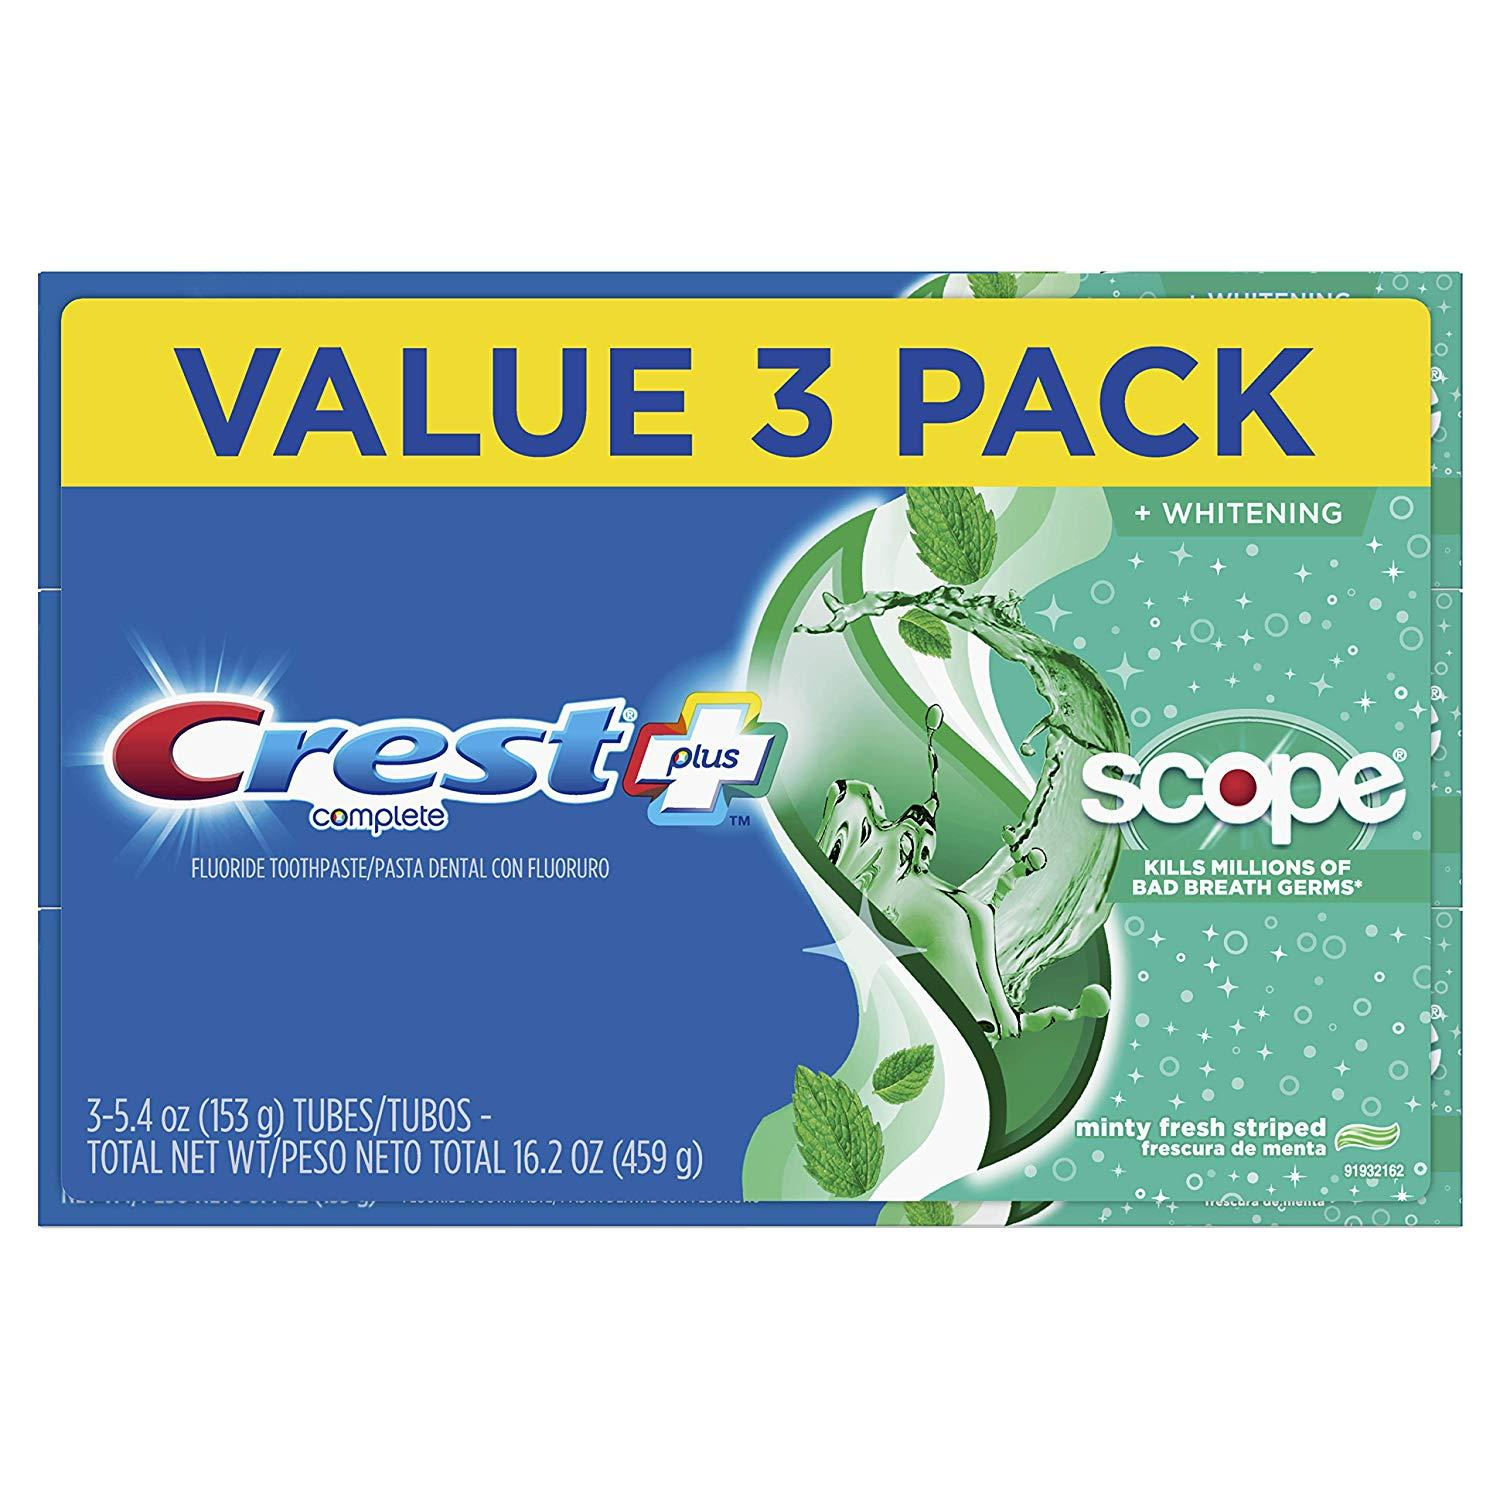 3 Crest Complete Whitening Plus Scope Toothpaste for $4.97